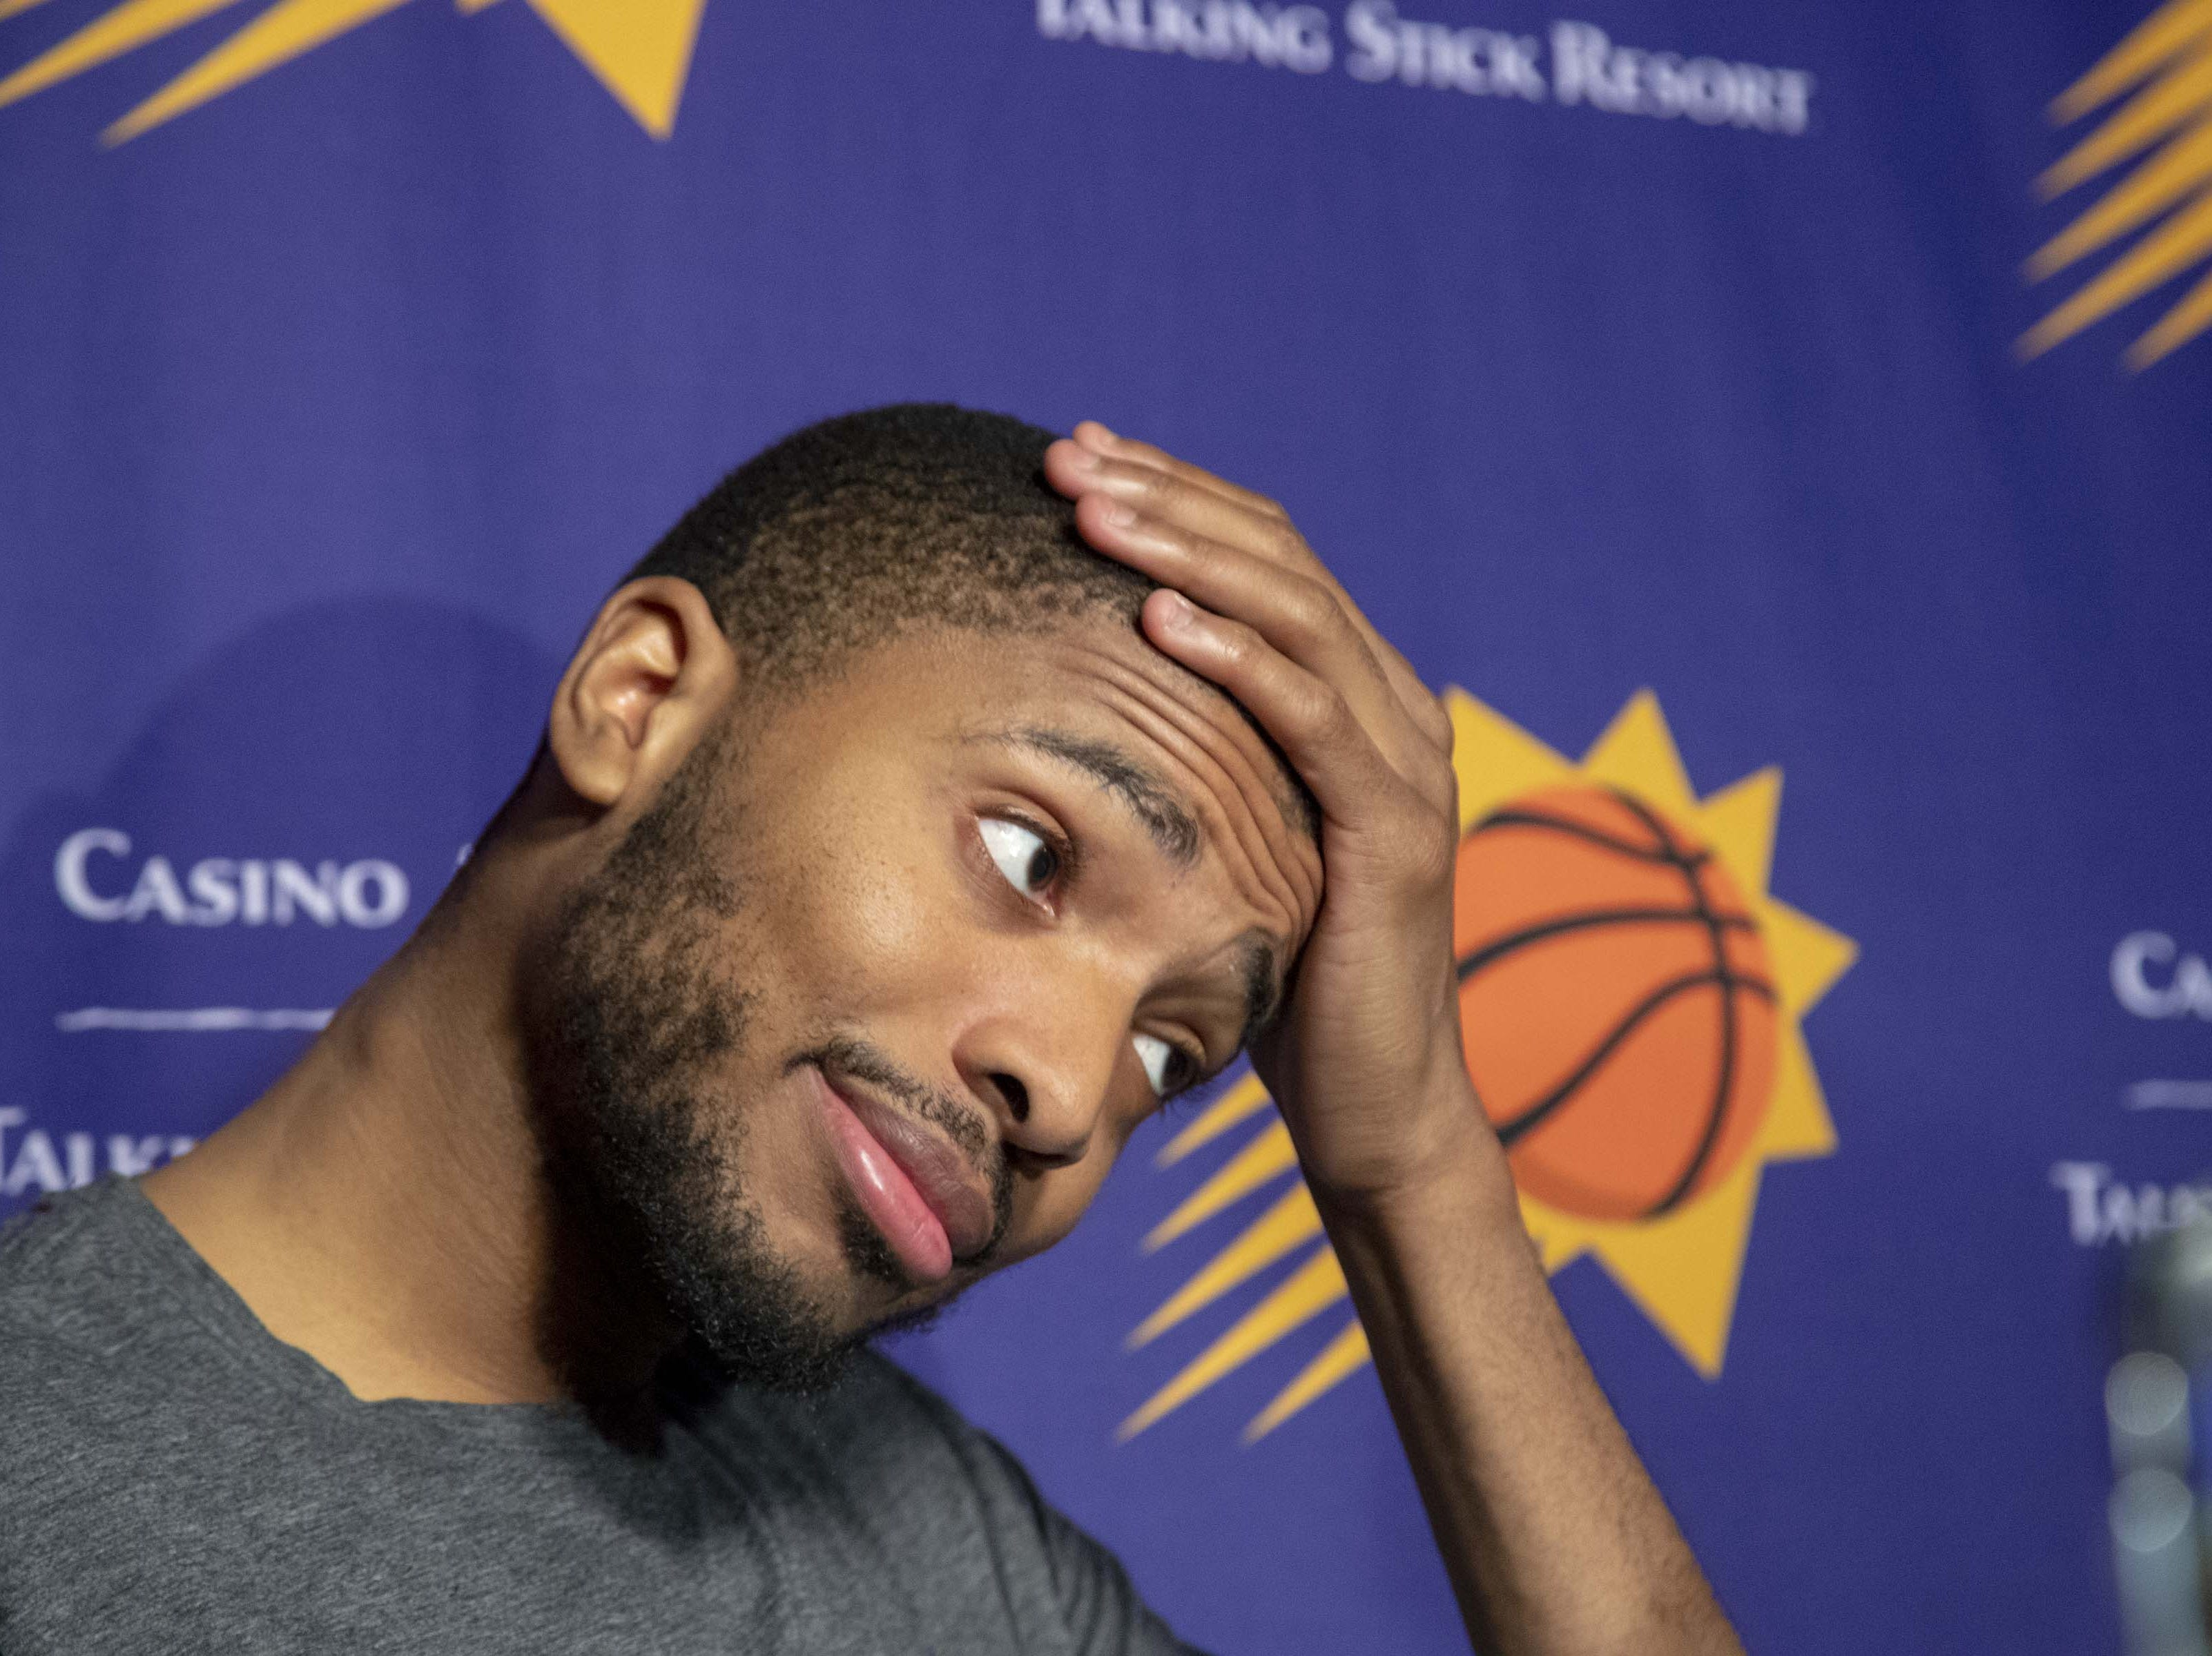 Mikal Bridges averaged 8.3 points with 3.7 rebounds and 1.6 steals per game his rookie season with the Suns.